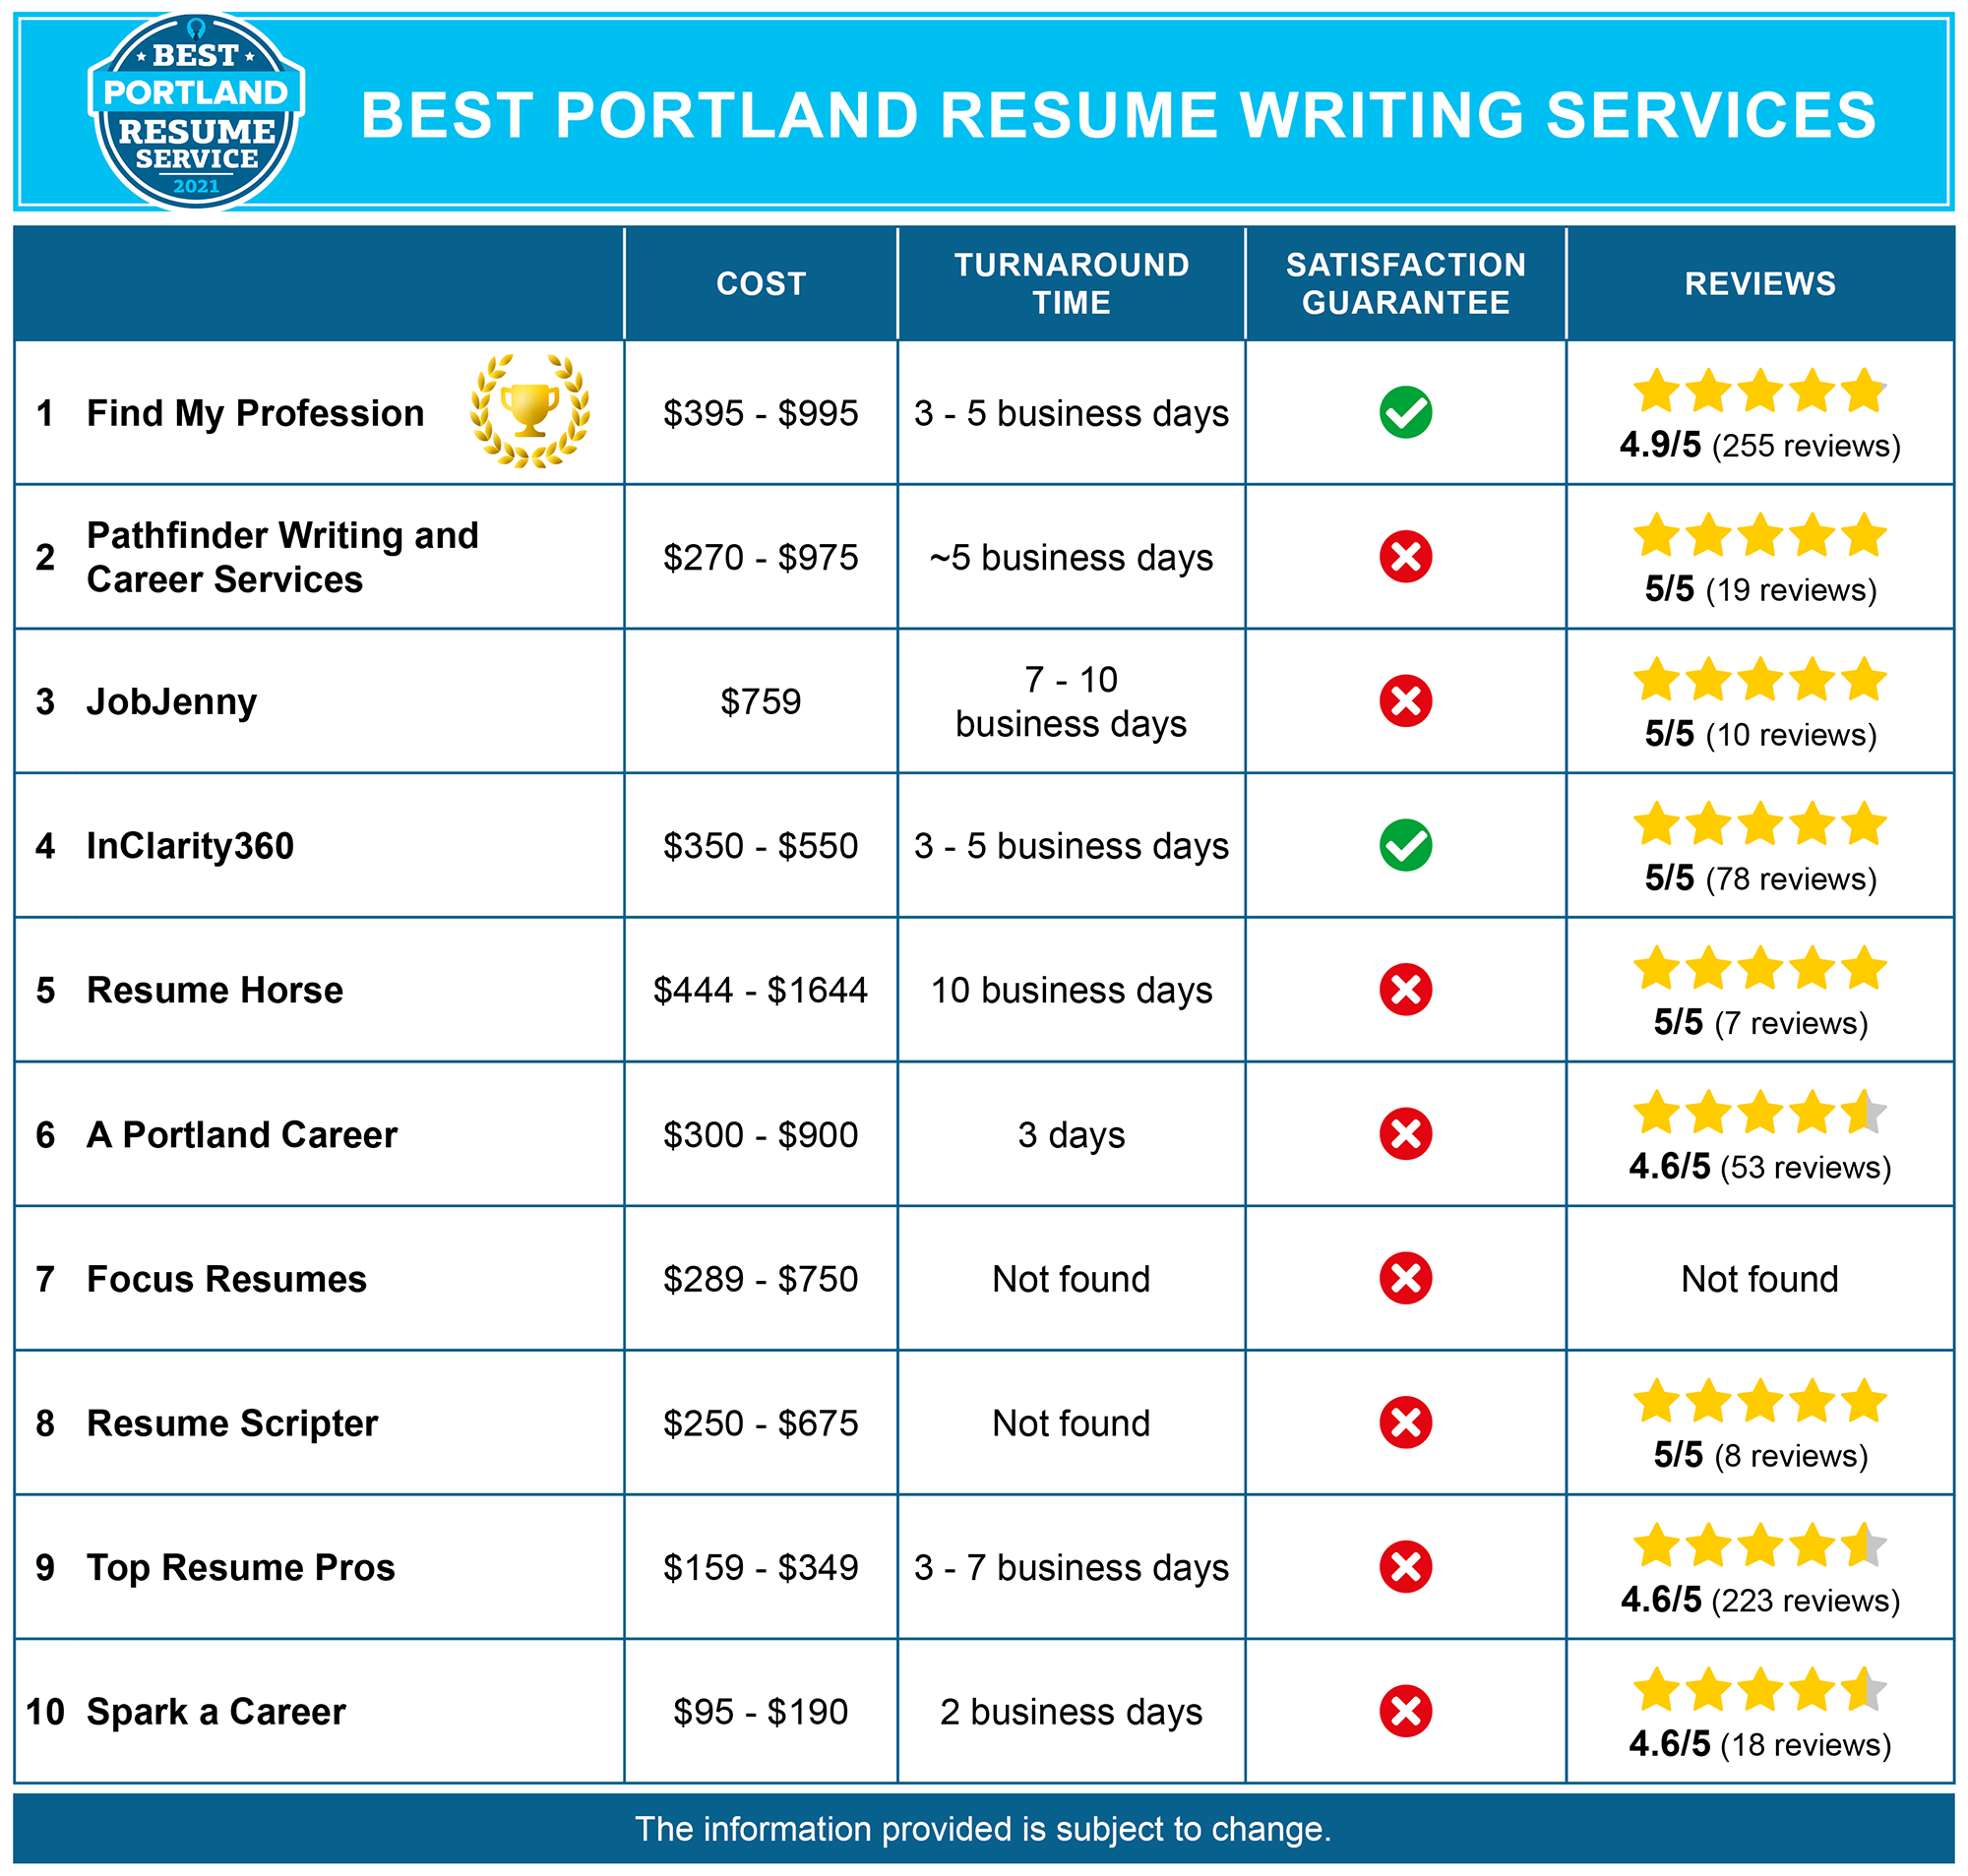 Best Portland Resume Services